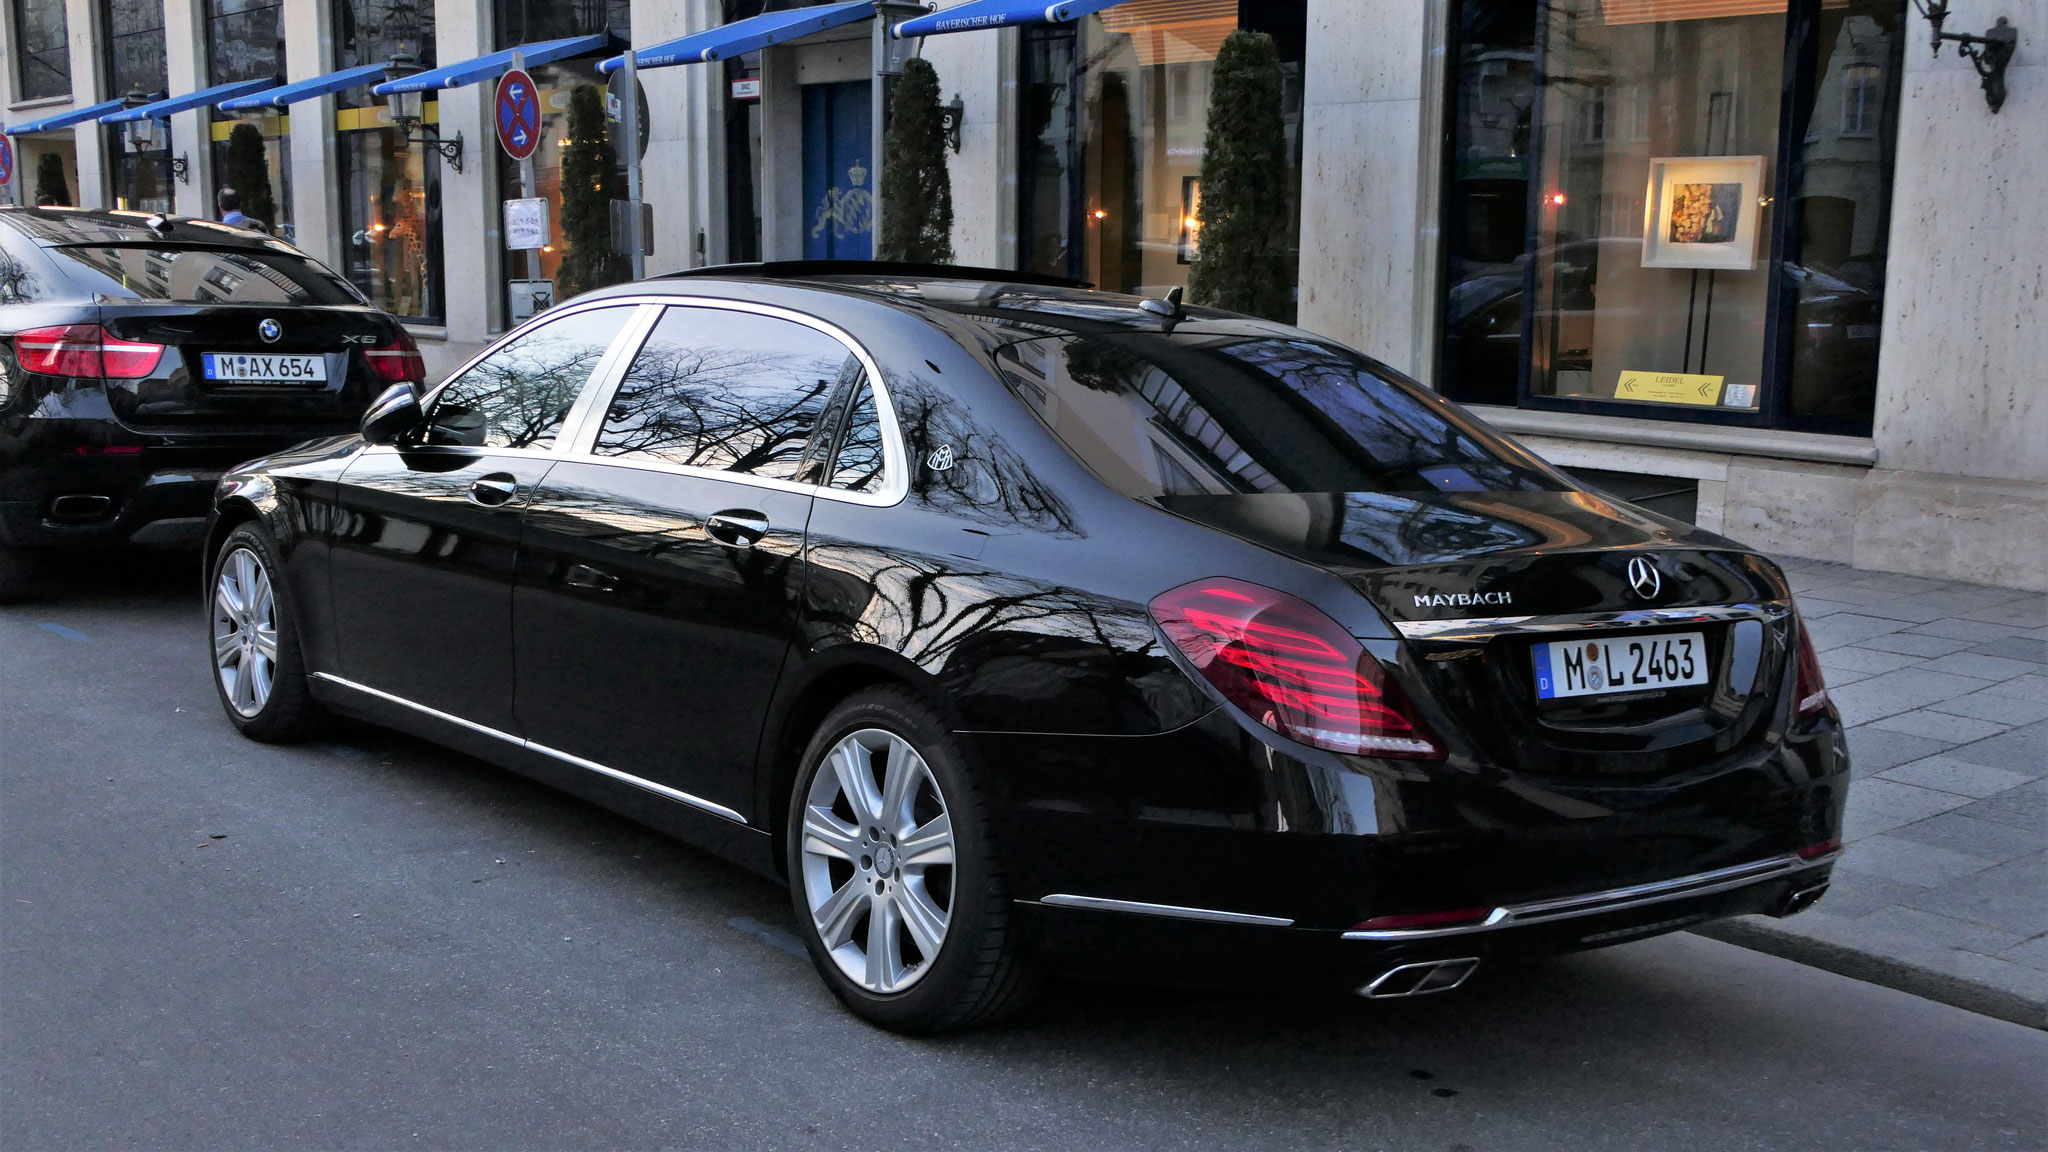 Mercedes Maybach S500 - M-L-2463